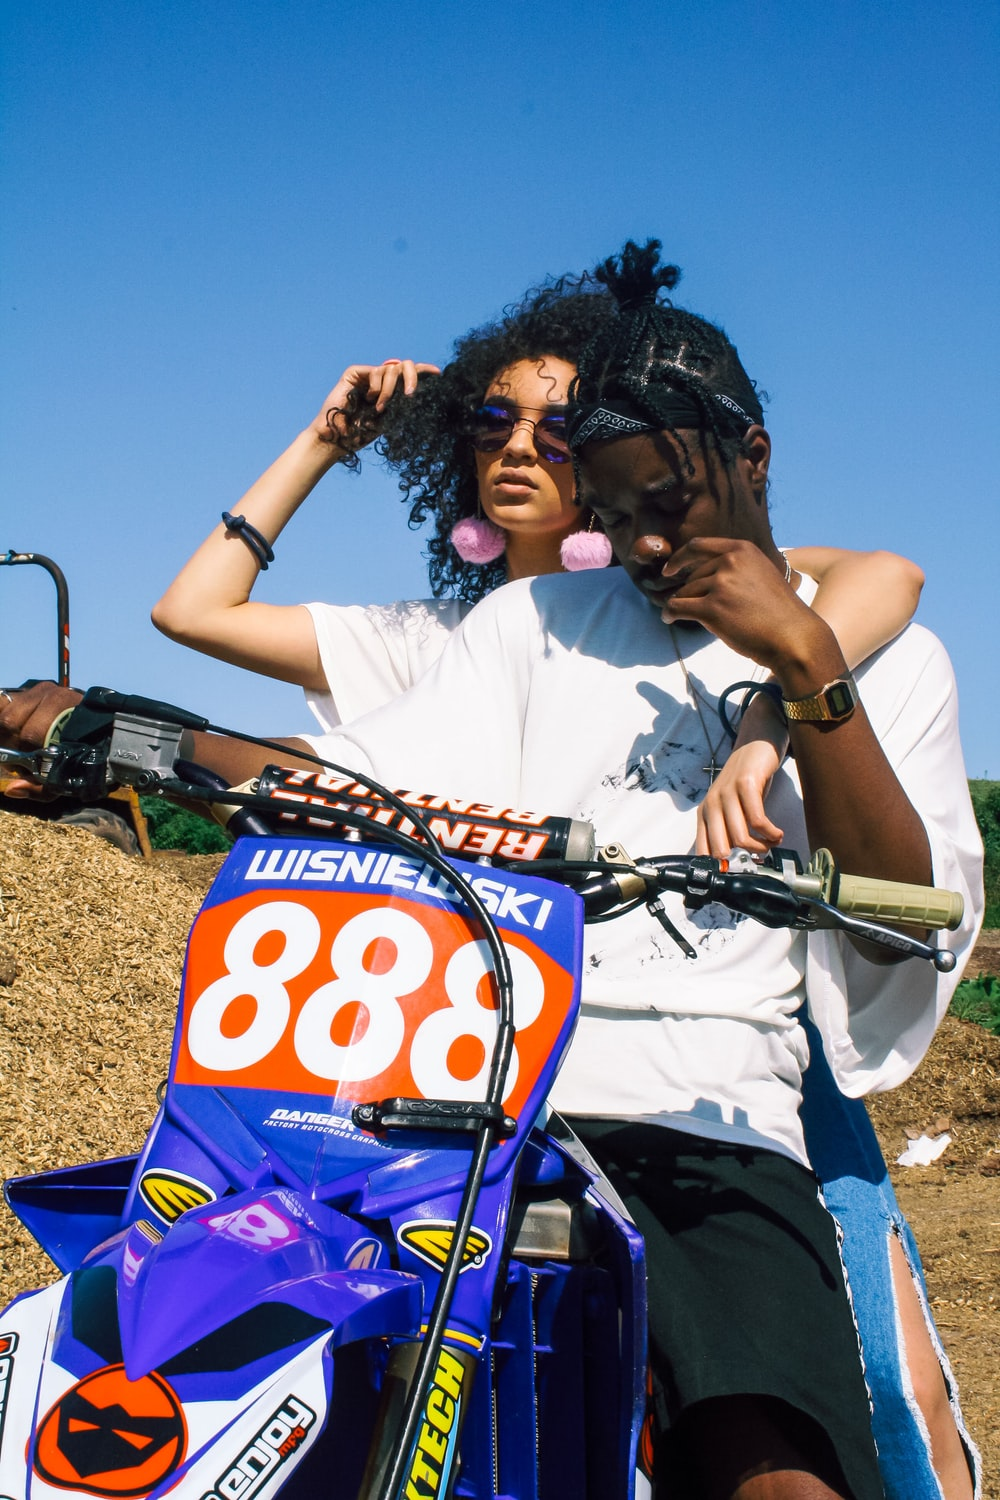 man riding enduro motorcycle with woman